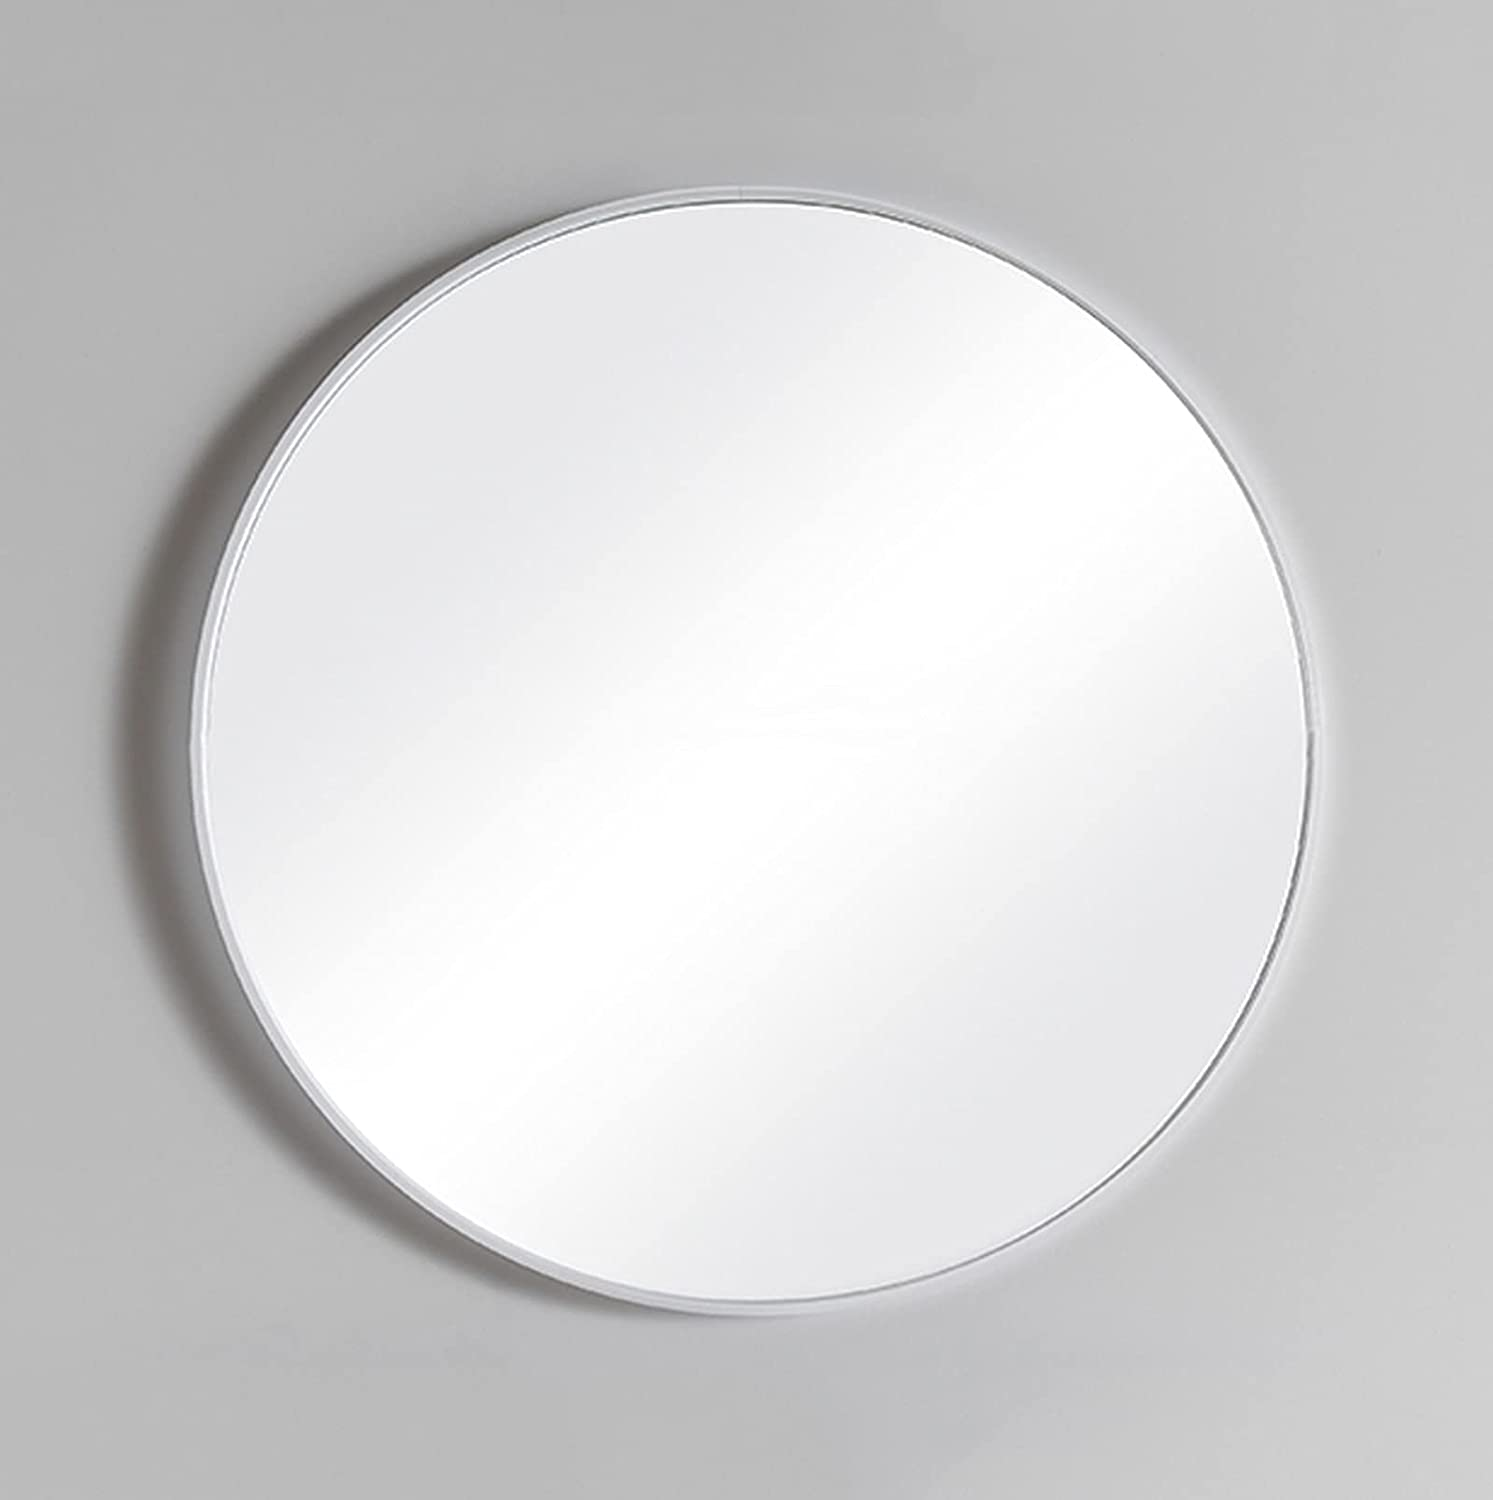 LIGUOYI 23.6in Big Metal Frame All items in the store Bathroom Wall Mirro Max 47% OFF Round Mirror